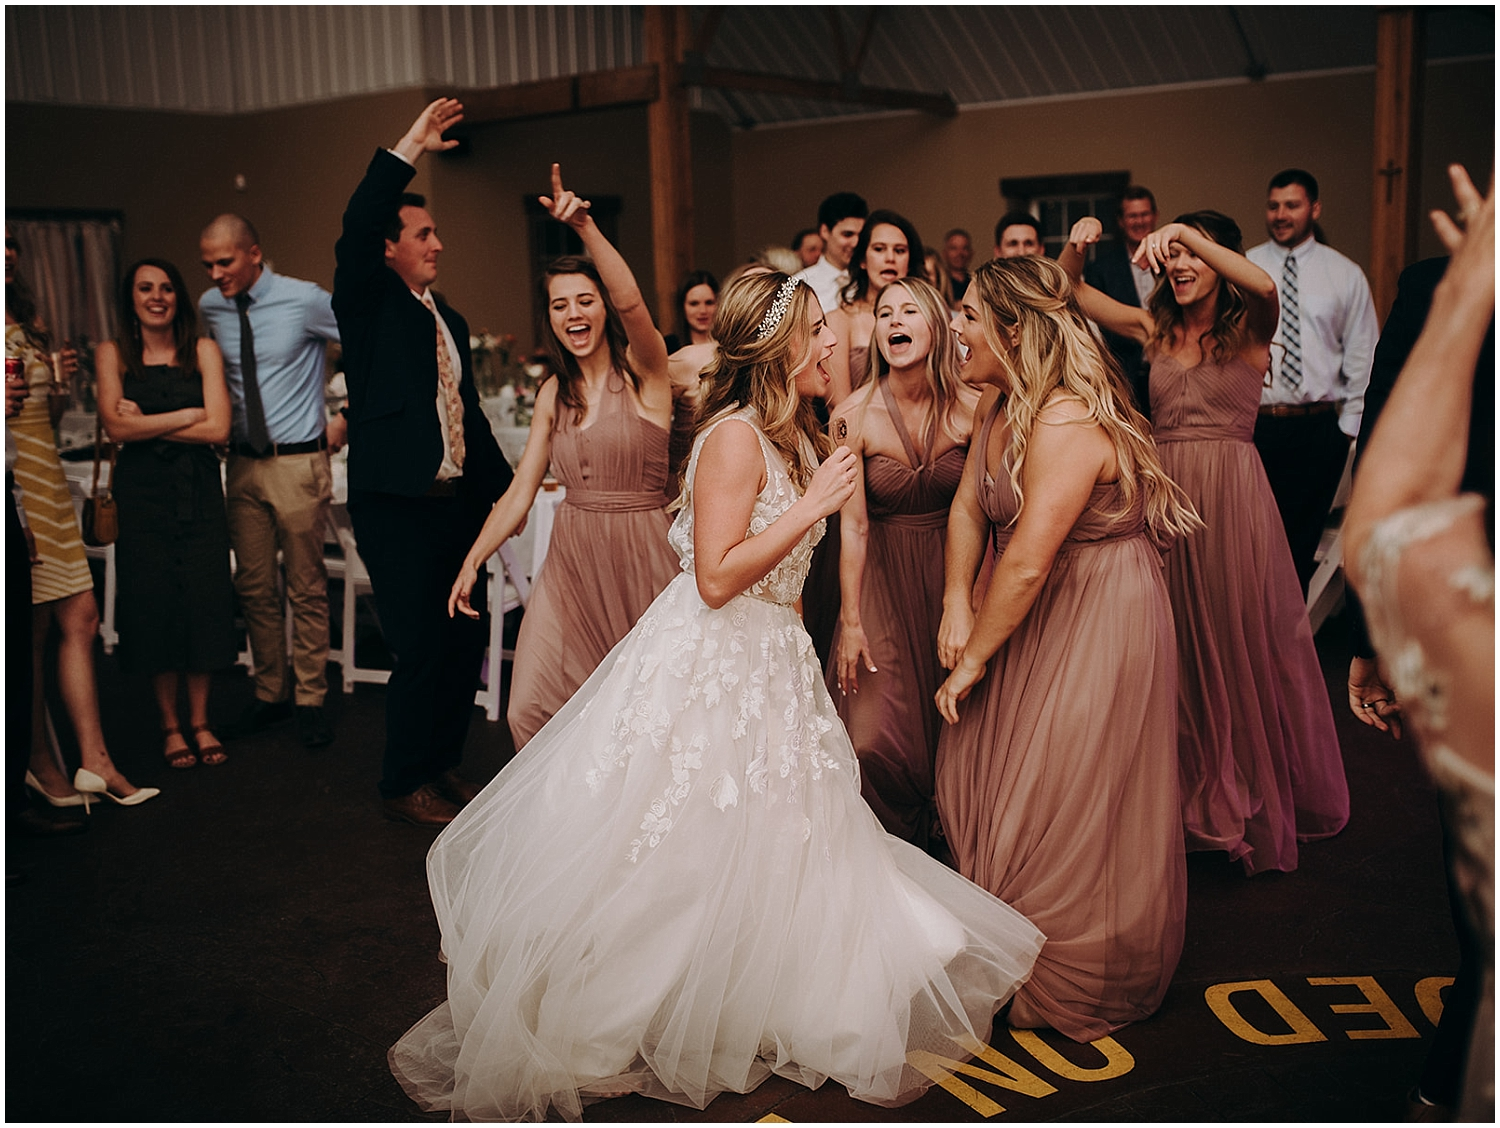 the bride and the bridesmaids dancing at the wedding reception